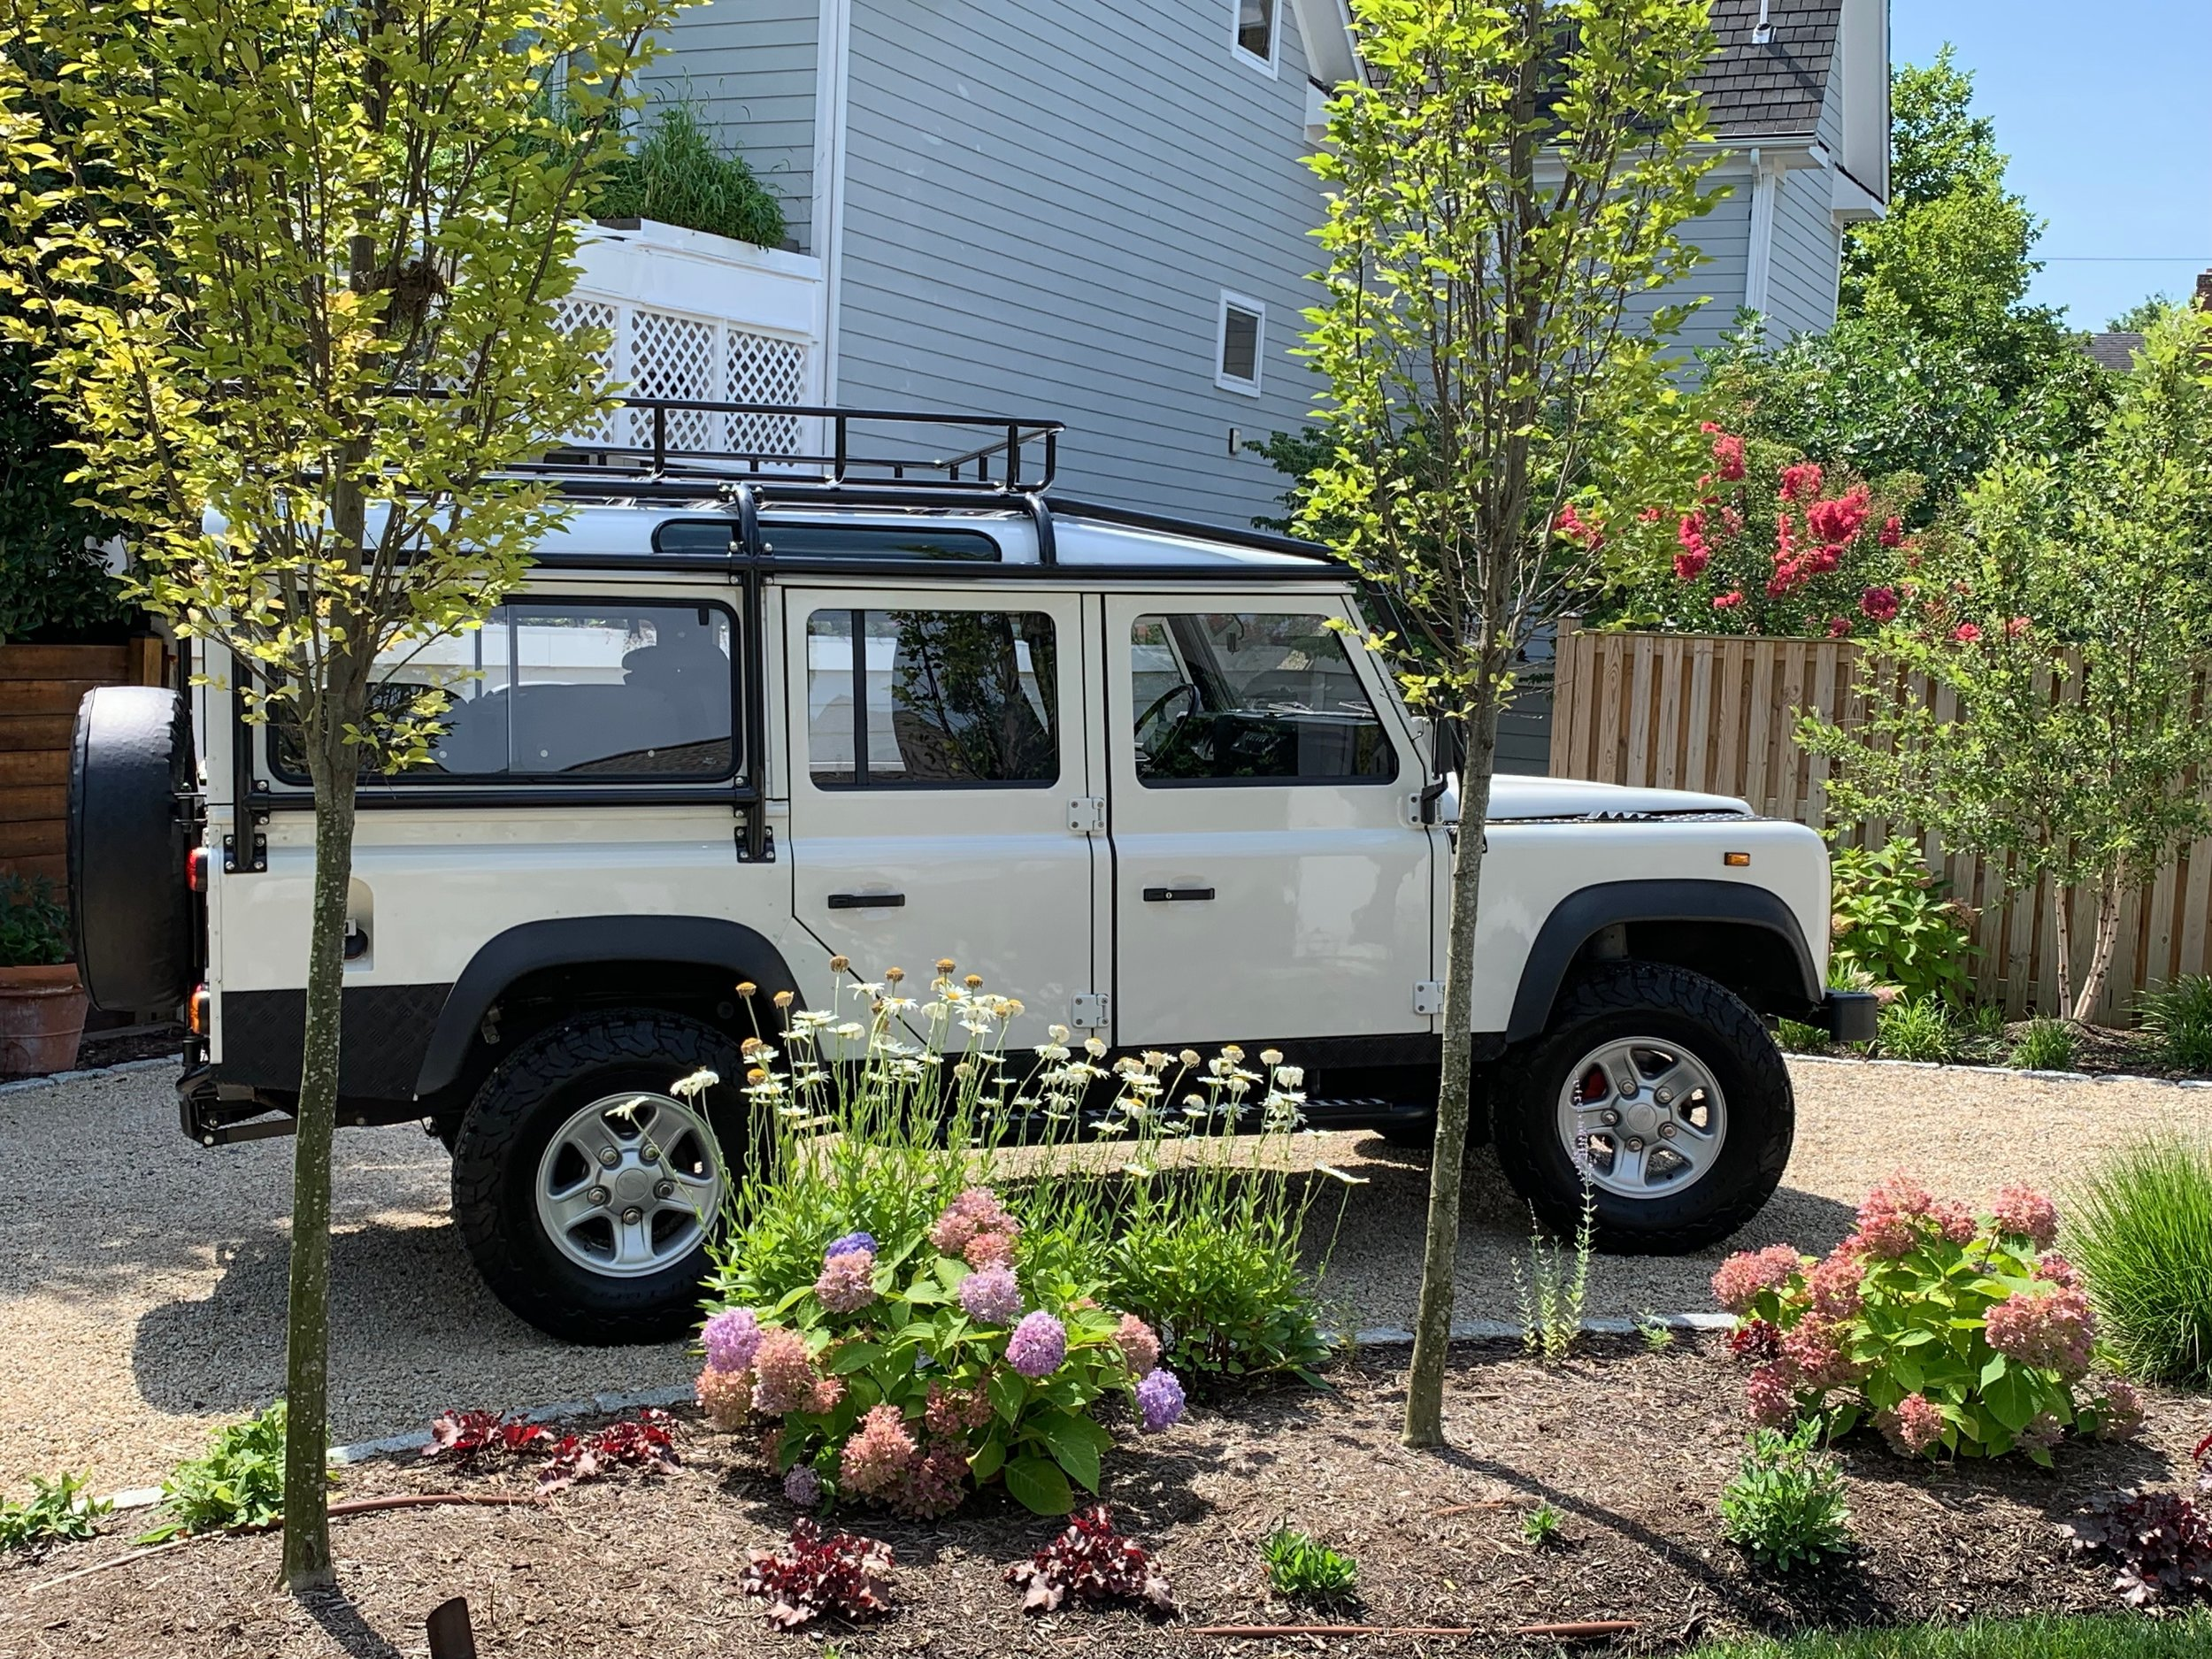 1986 Land Rover 110 - If interested or for details, email info@indlr.com